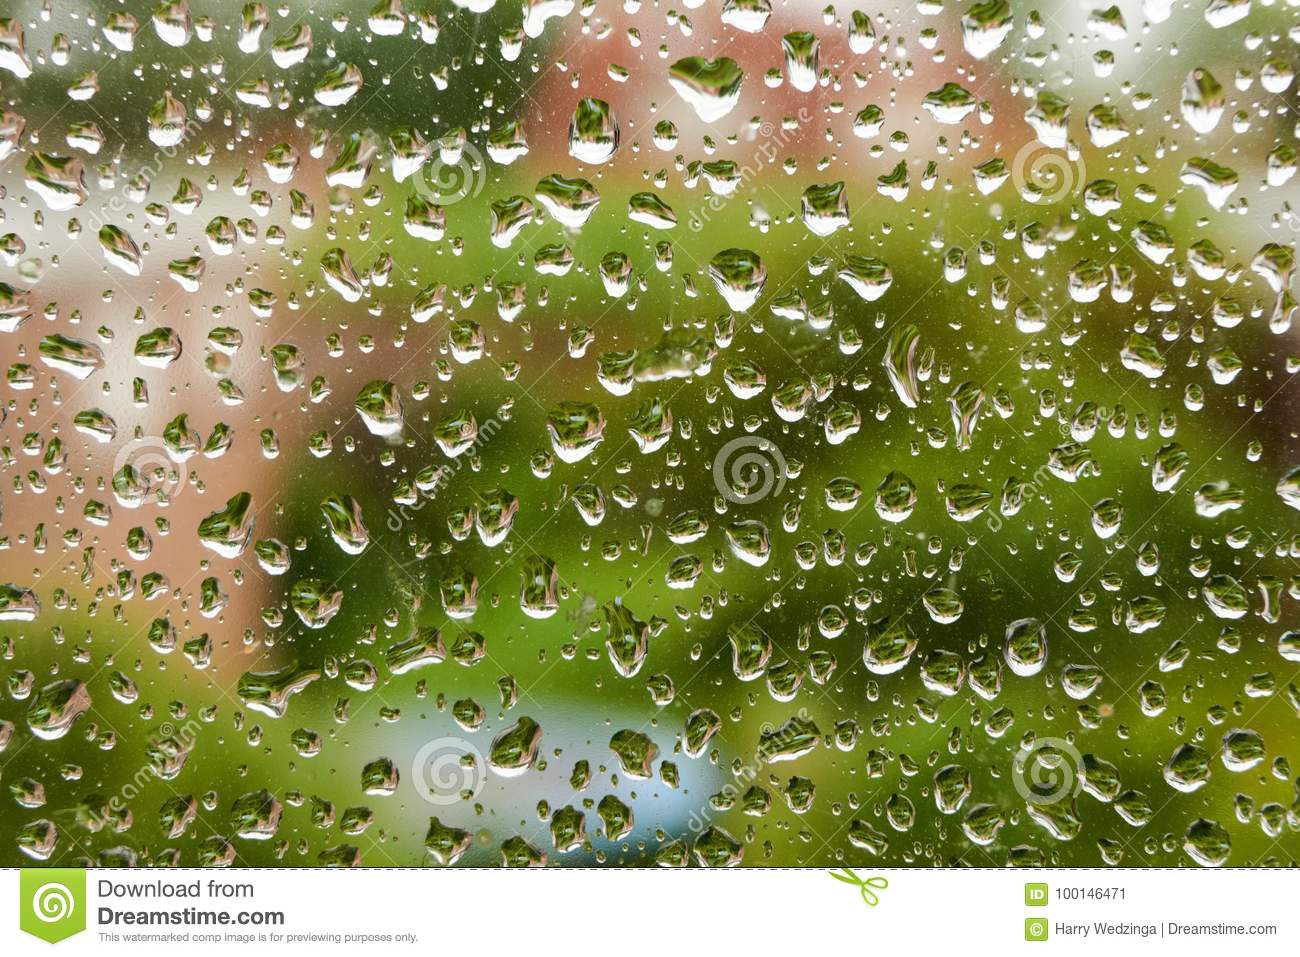 Waterdrops on a window